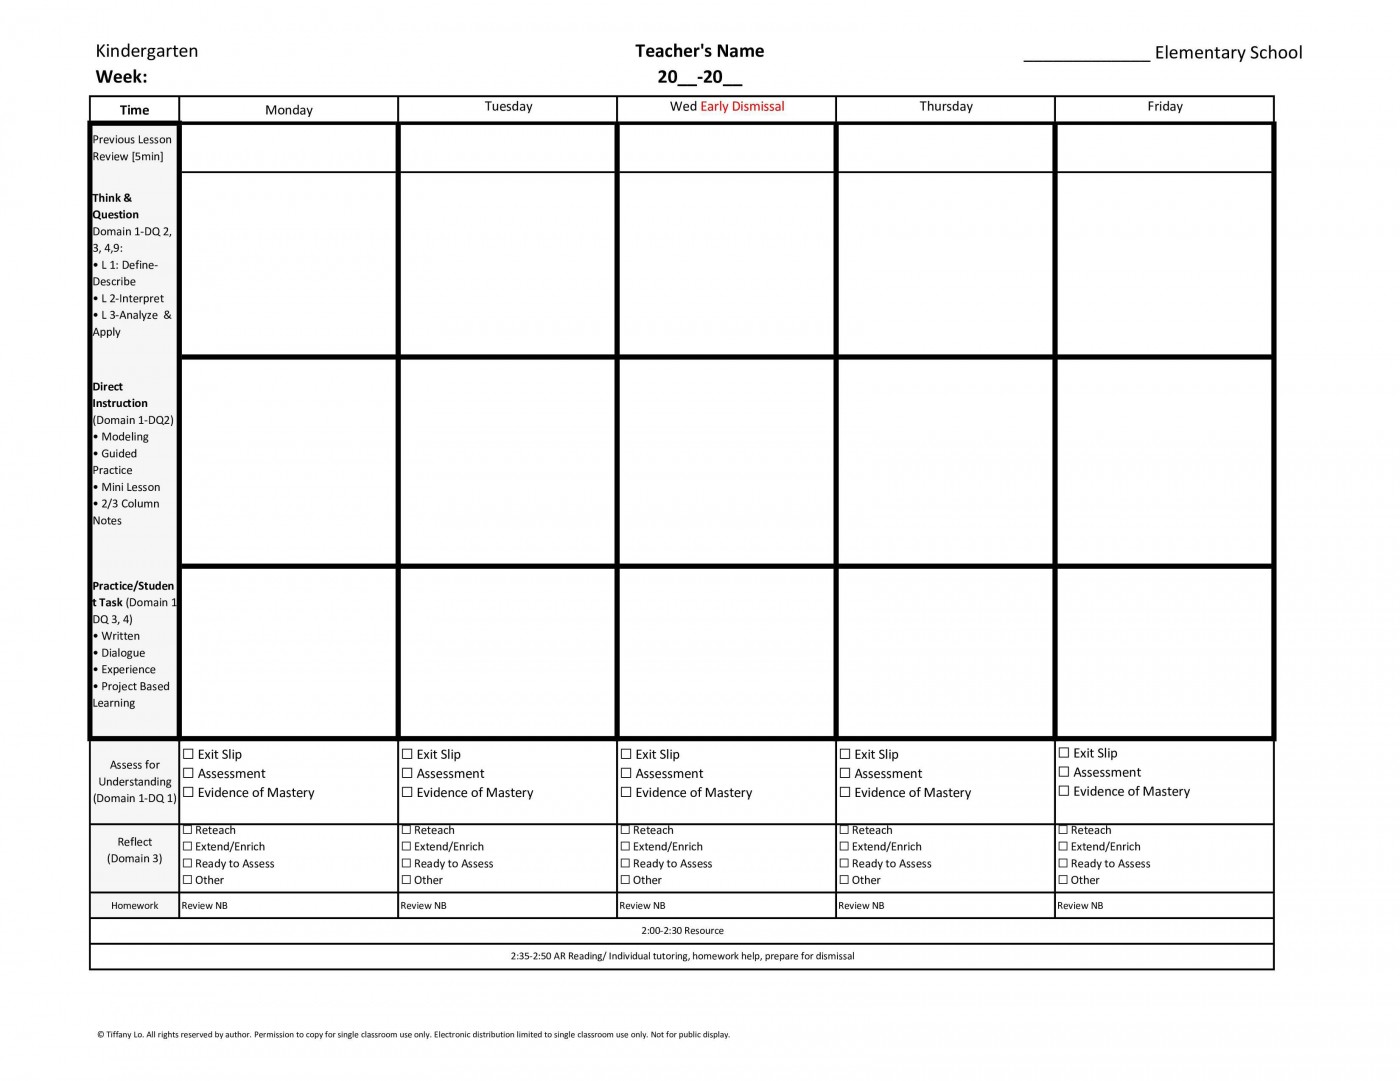 006 Unique Weekly Lesson Plan Template Inspiration  Blank Free High School Danielson Google Doc1400